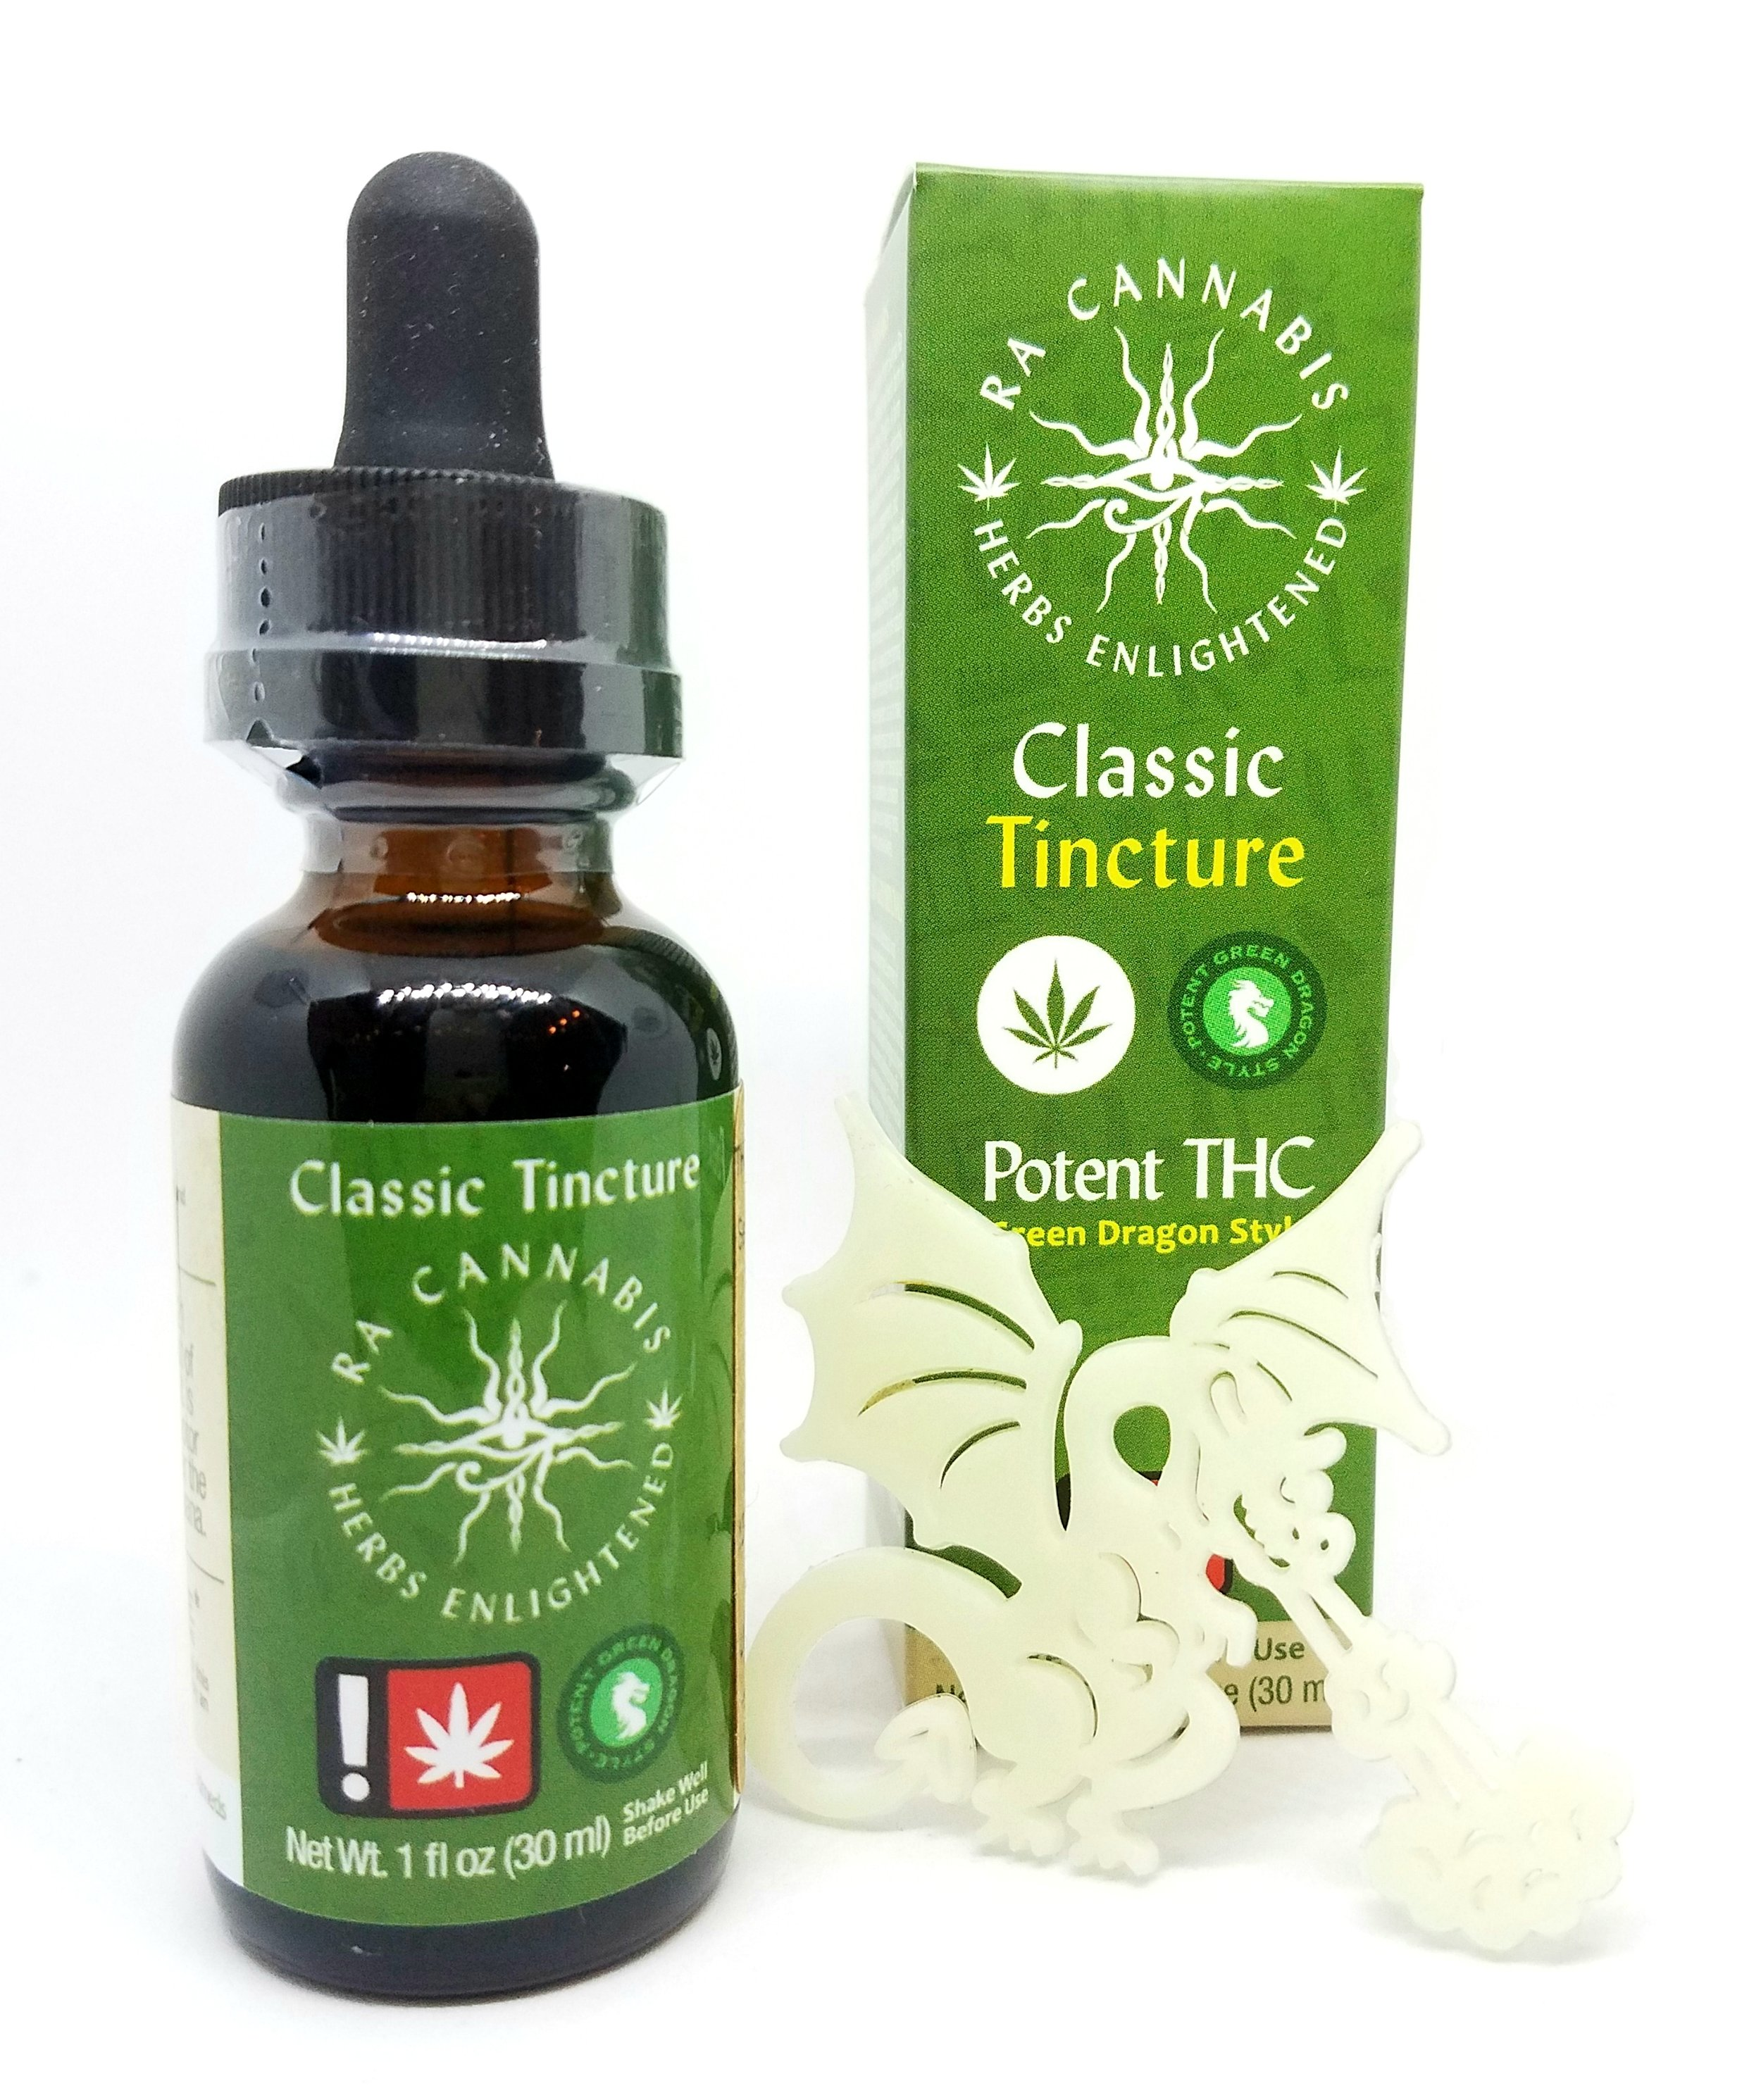 Classic Tincture made by Sun God Medicinals